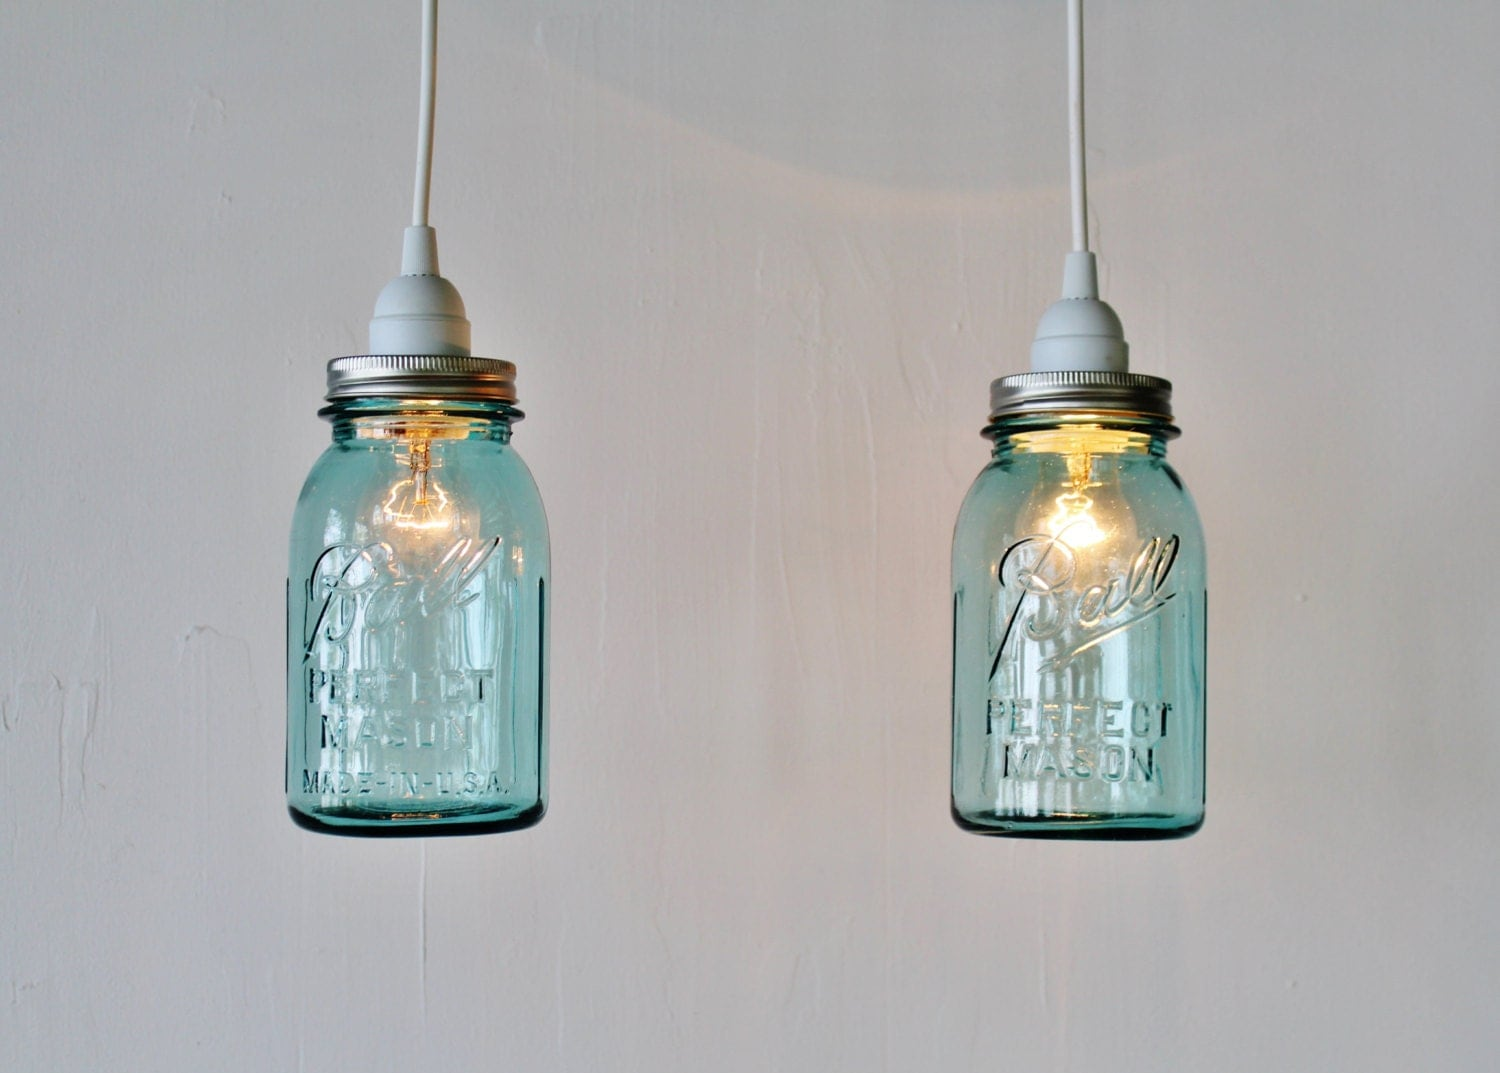 2 mason jar pendant lights pair of hanging pendant lamps with